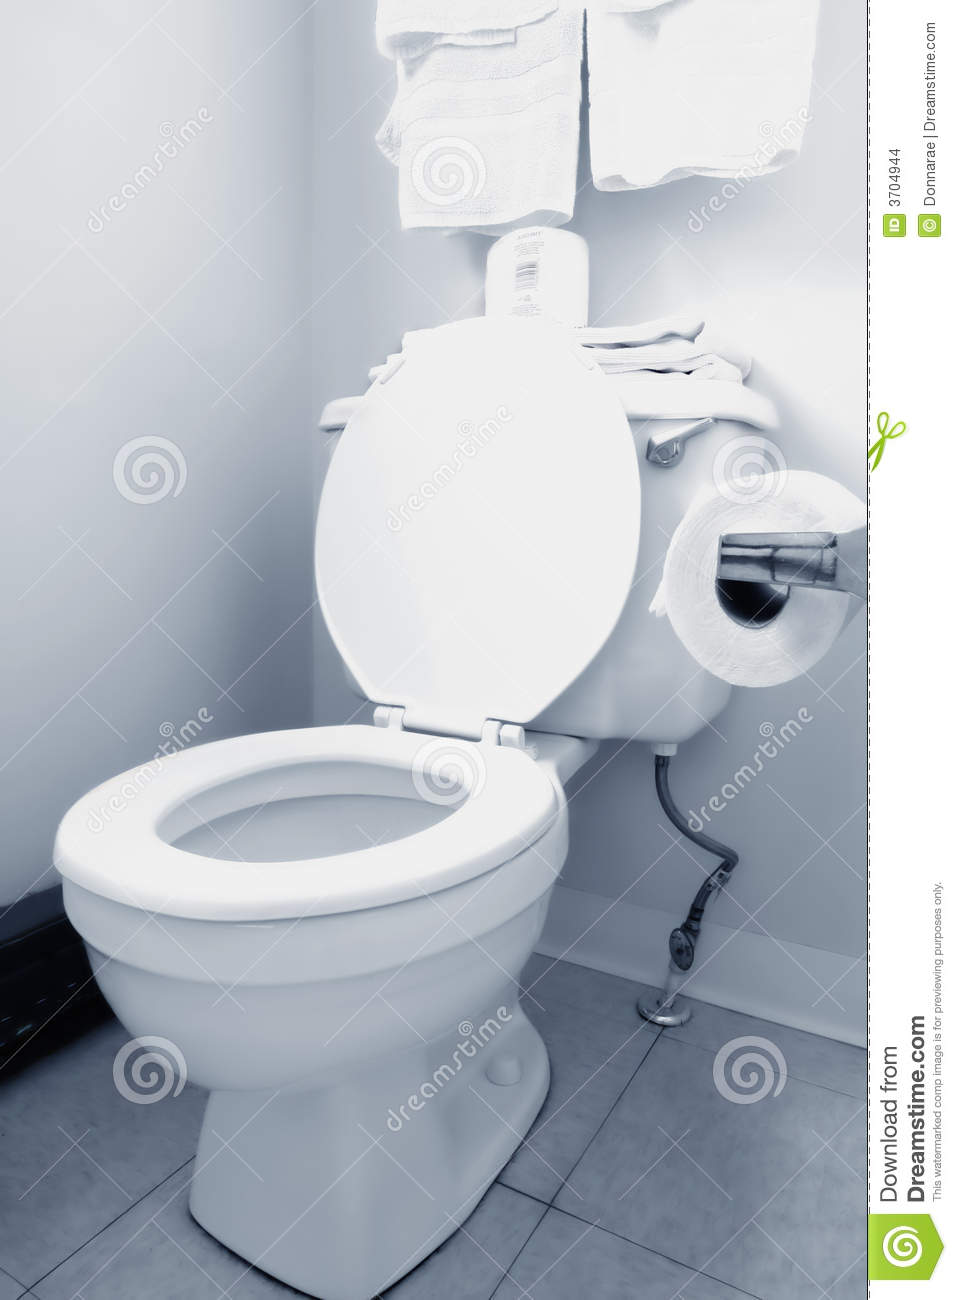 how to clean stains from white toilet seat